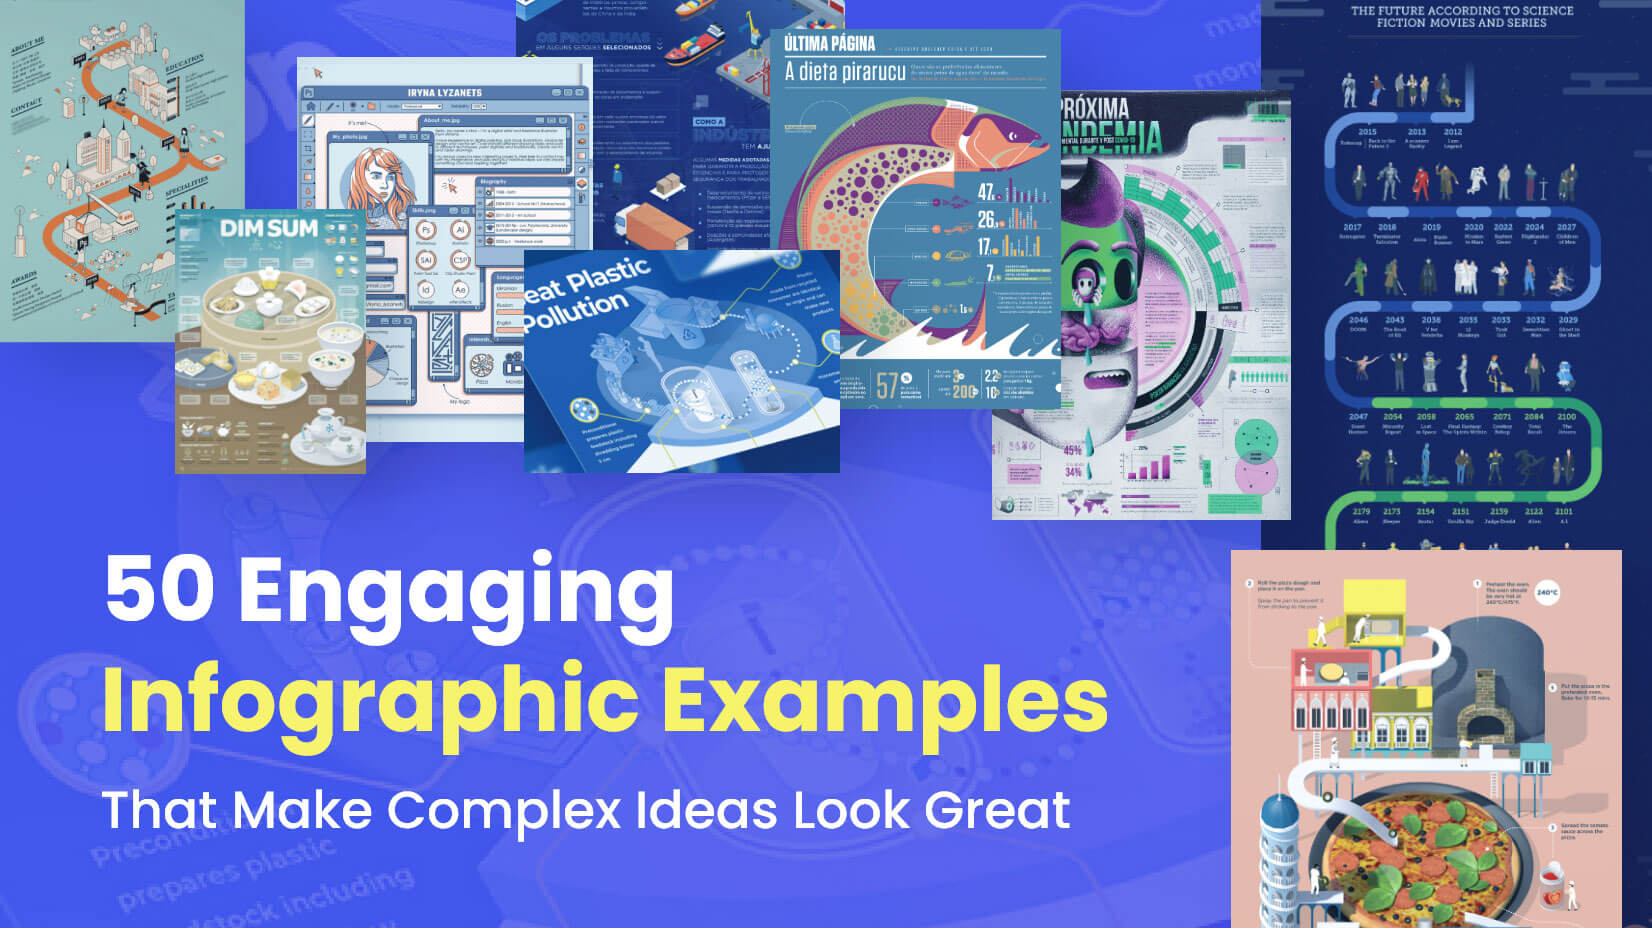 50 Engaging Infographic Examples